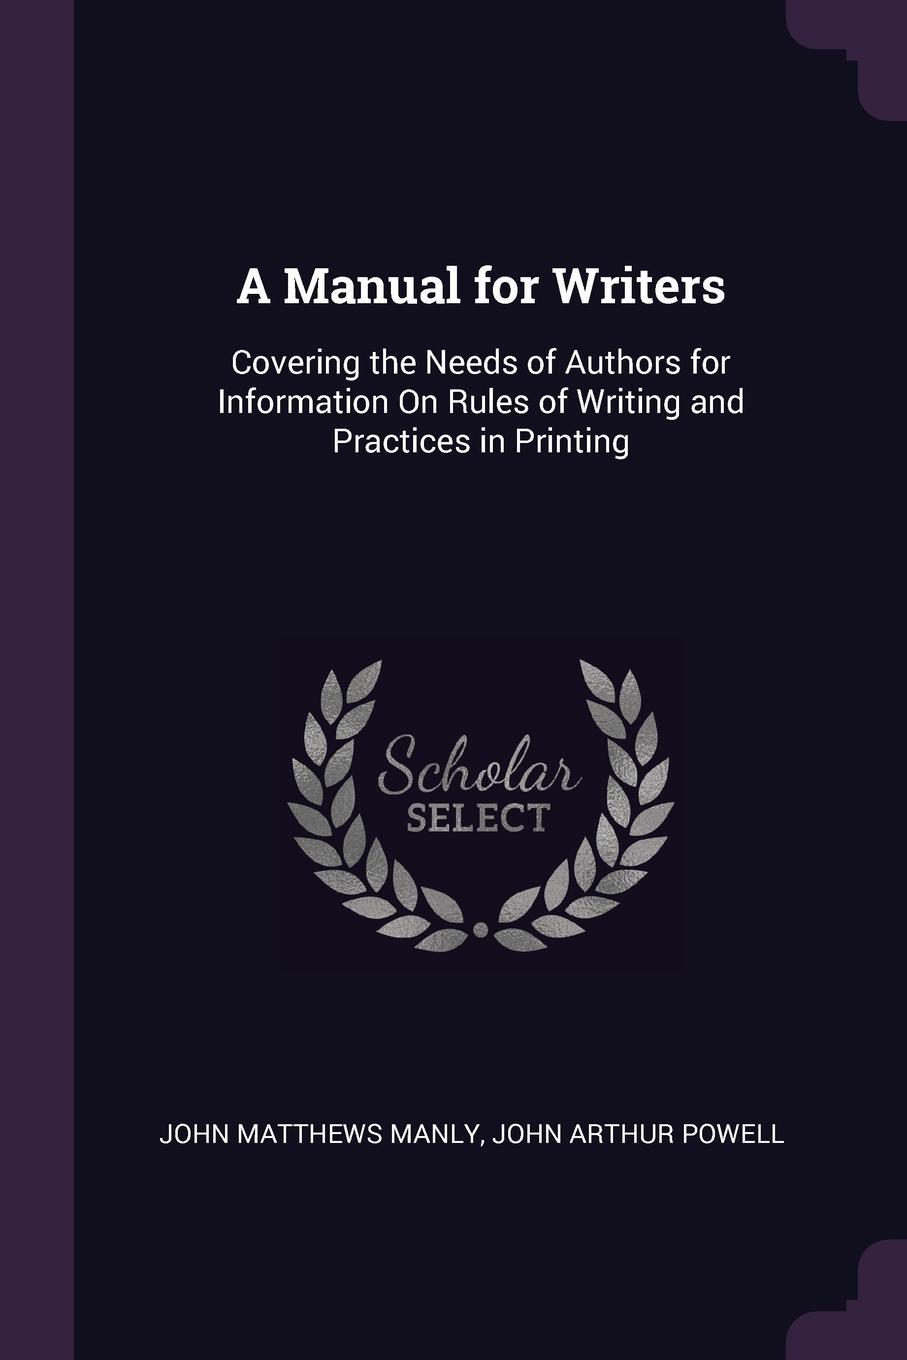 John Matthews Manly, John Arthur Powell. A Manual for Writers. Covering the Needs of Authors for Information On Rules of Writing and Practices in Printing